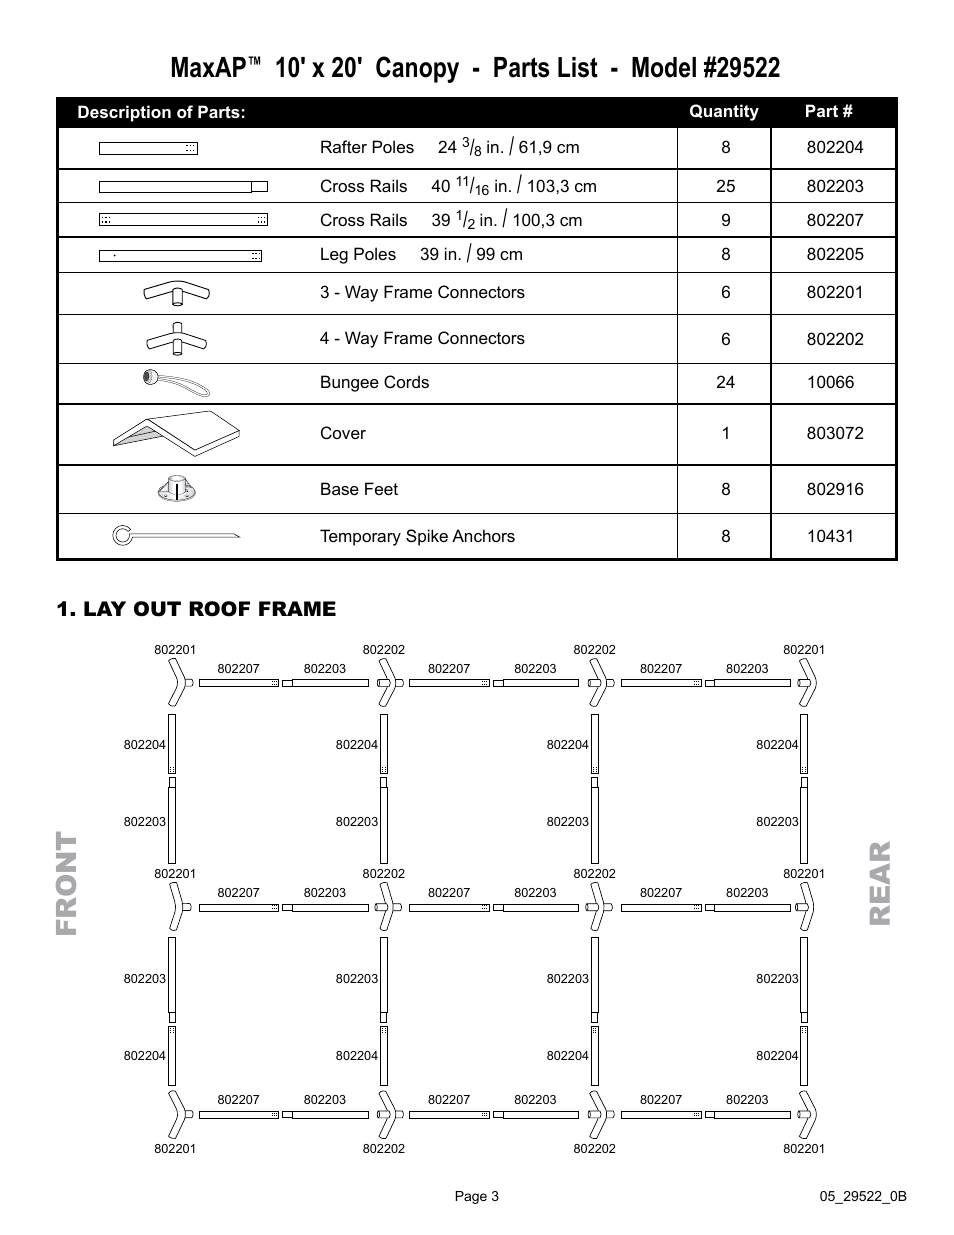 Fr ont re a r Maxap Lay out roof frame   ShelterLogic 29522 10 x 20 Max AP Canopy User Manual   Page 3 / 5  sc 1 st  manualsdir.com & Fr ont re a r Maxap Lay out roof frame   ShelterLogic 29522 10 x ...